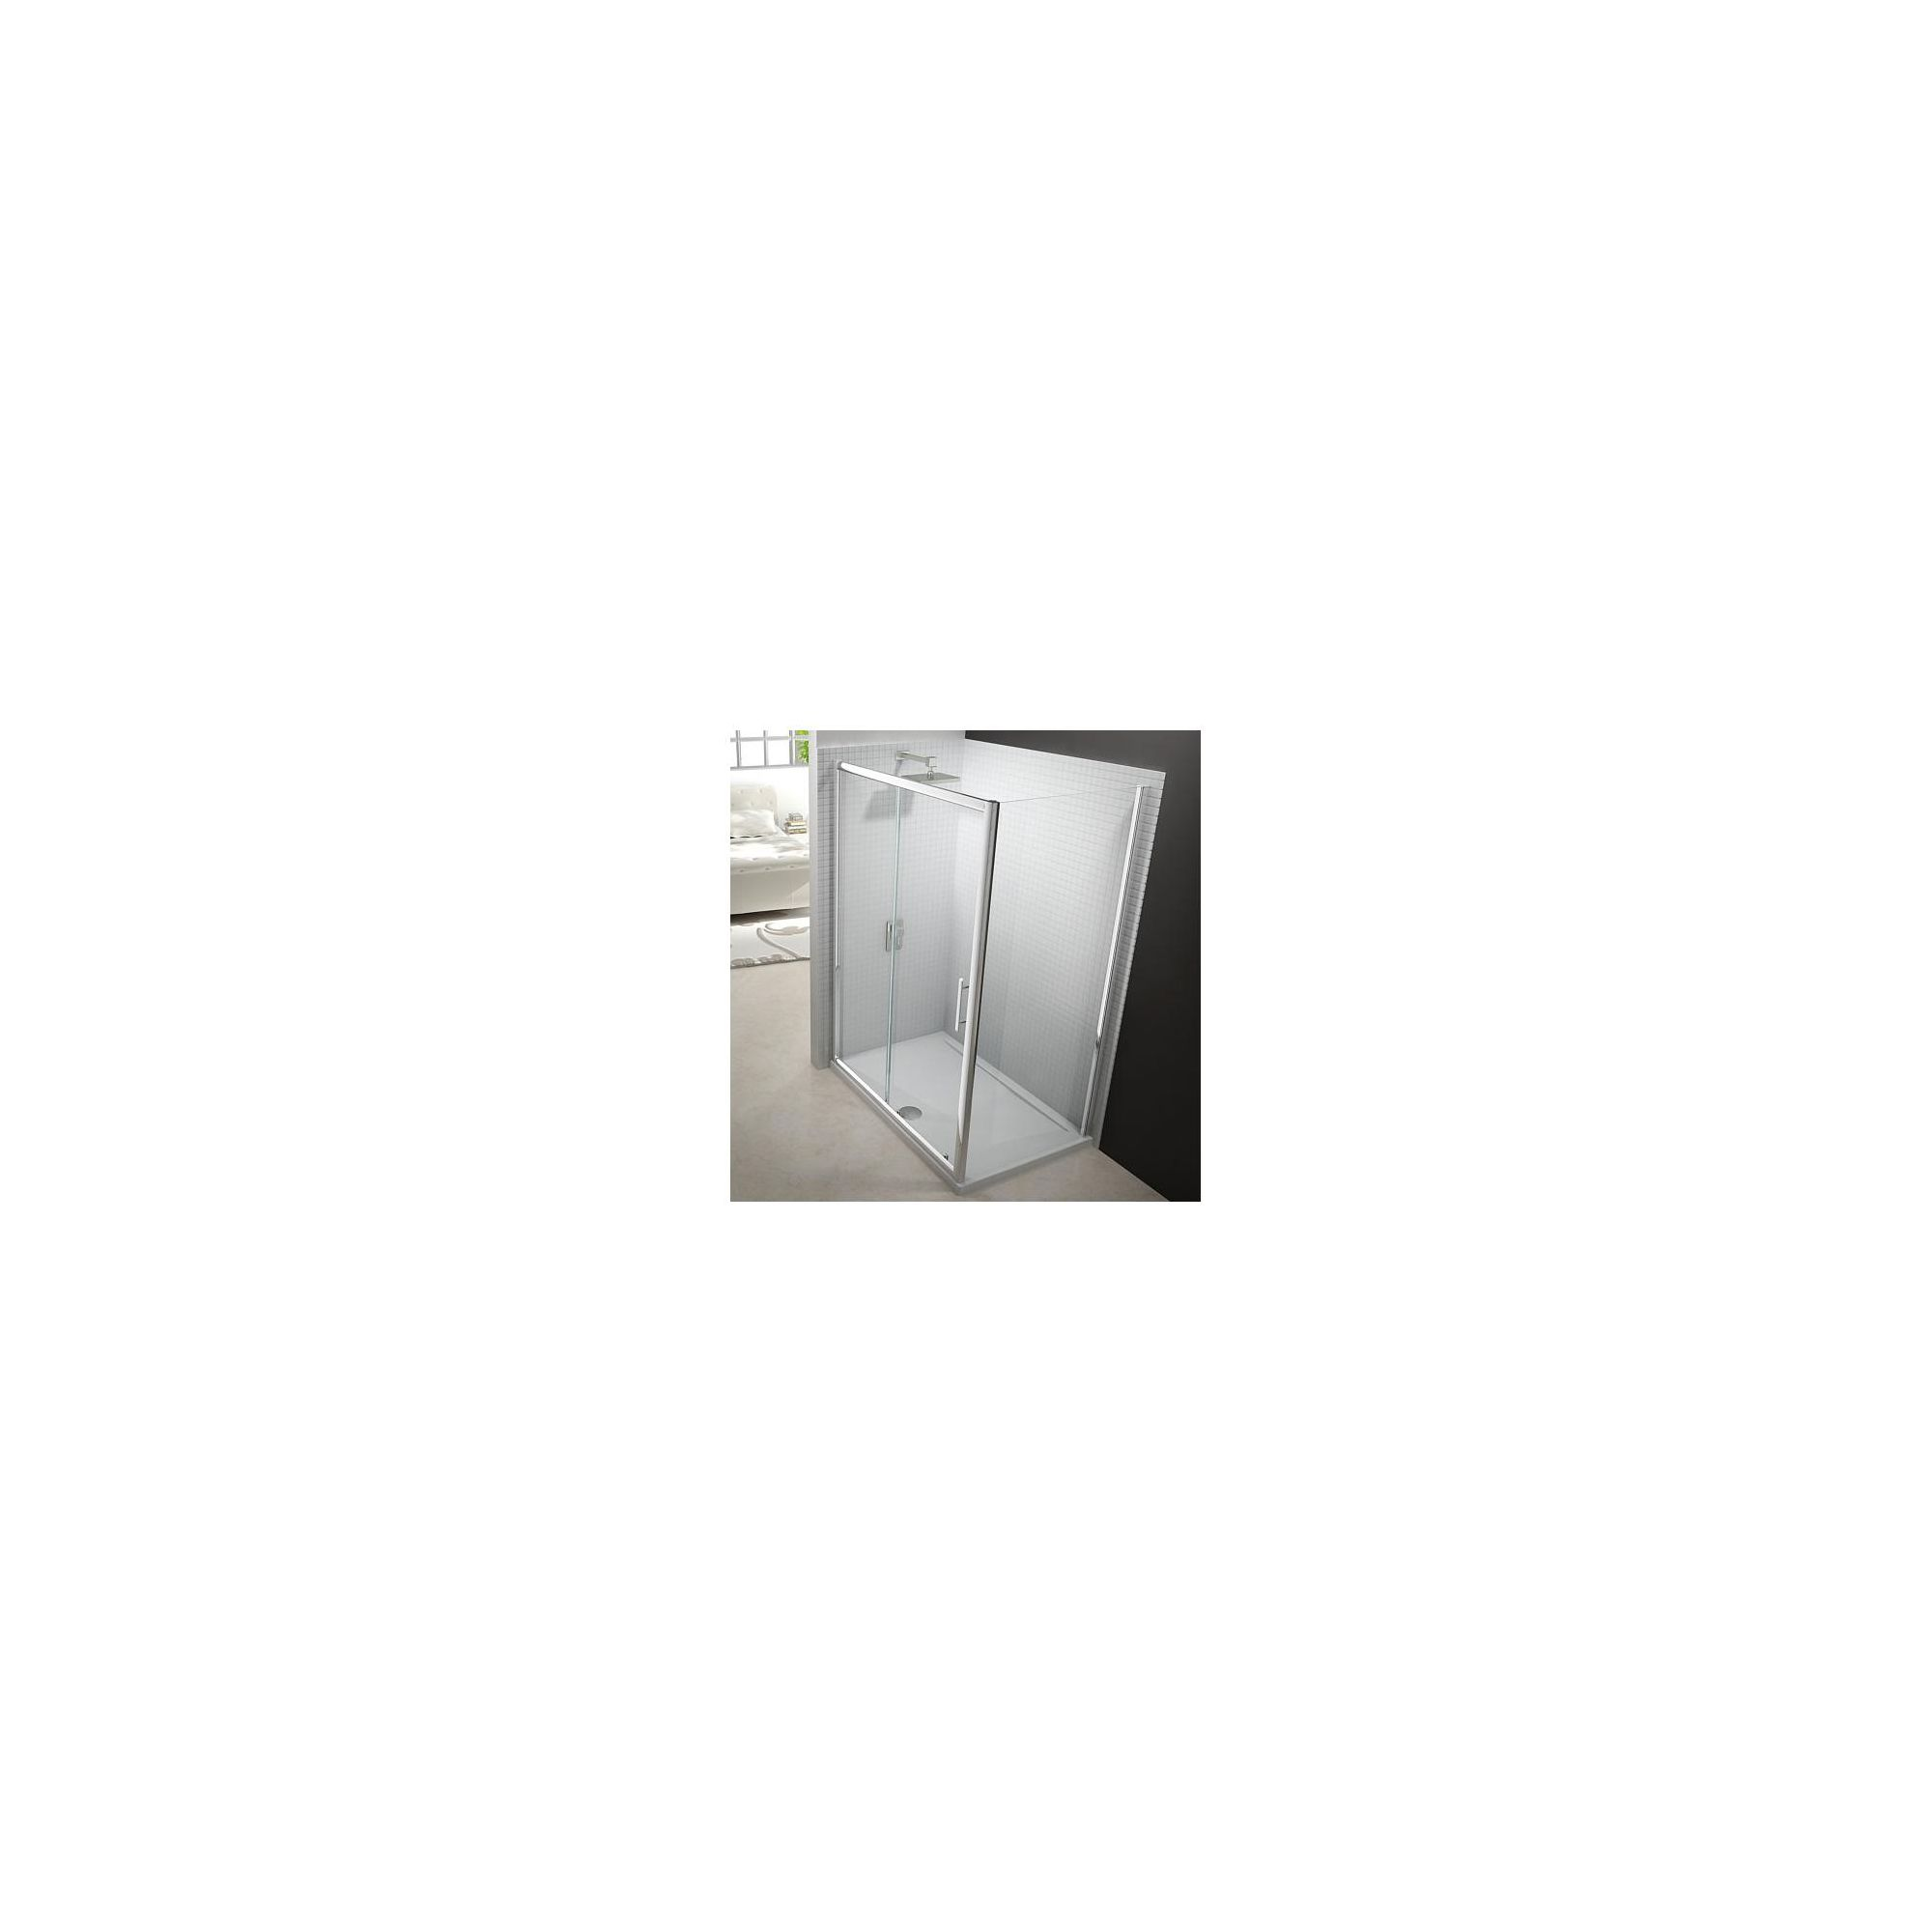 Merlyn Series 6 Sliding Shower Door, 1200mm Wide, Chrome Frame, 6mm Glass at Tesco Direct